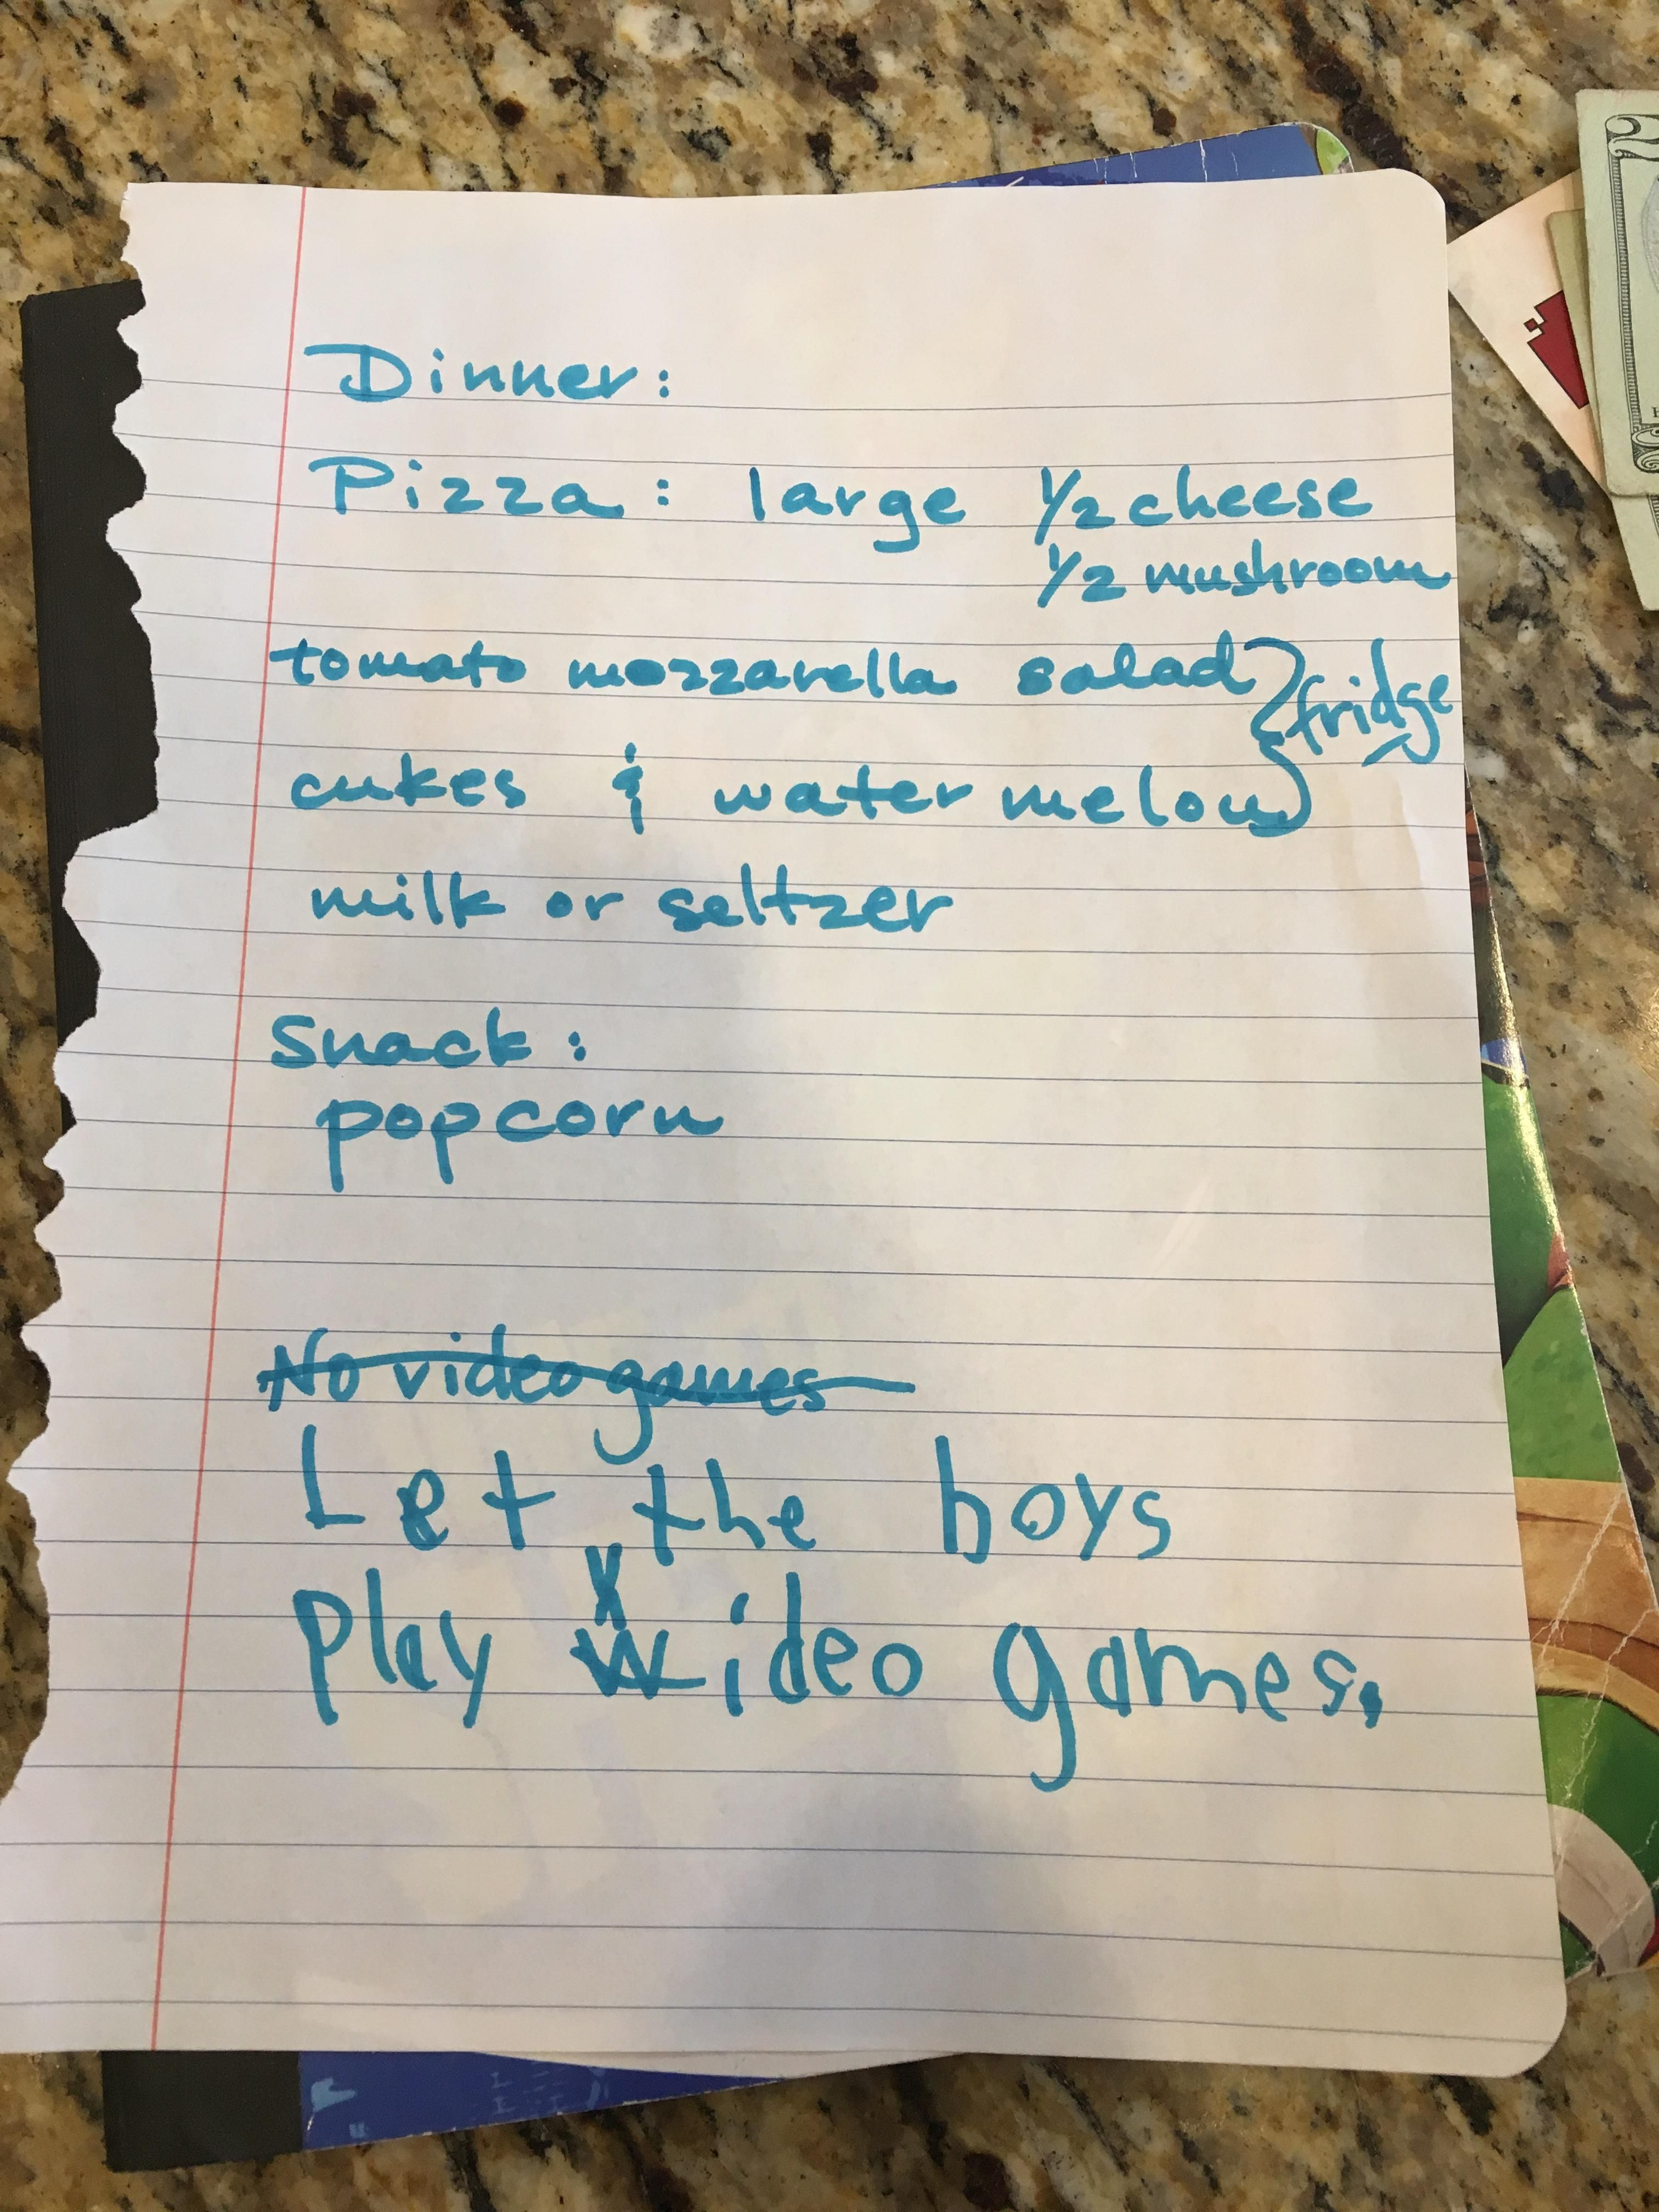 No Video Games! - My sister's 6 year old twins had different plans for when Grandma came over to babysit them.